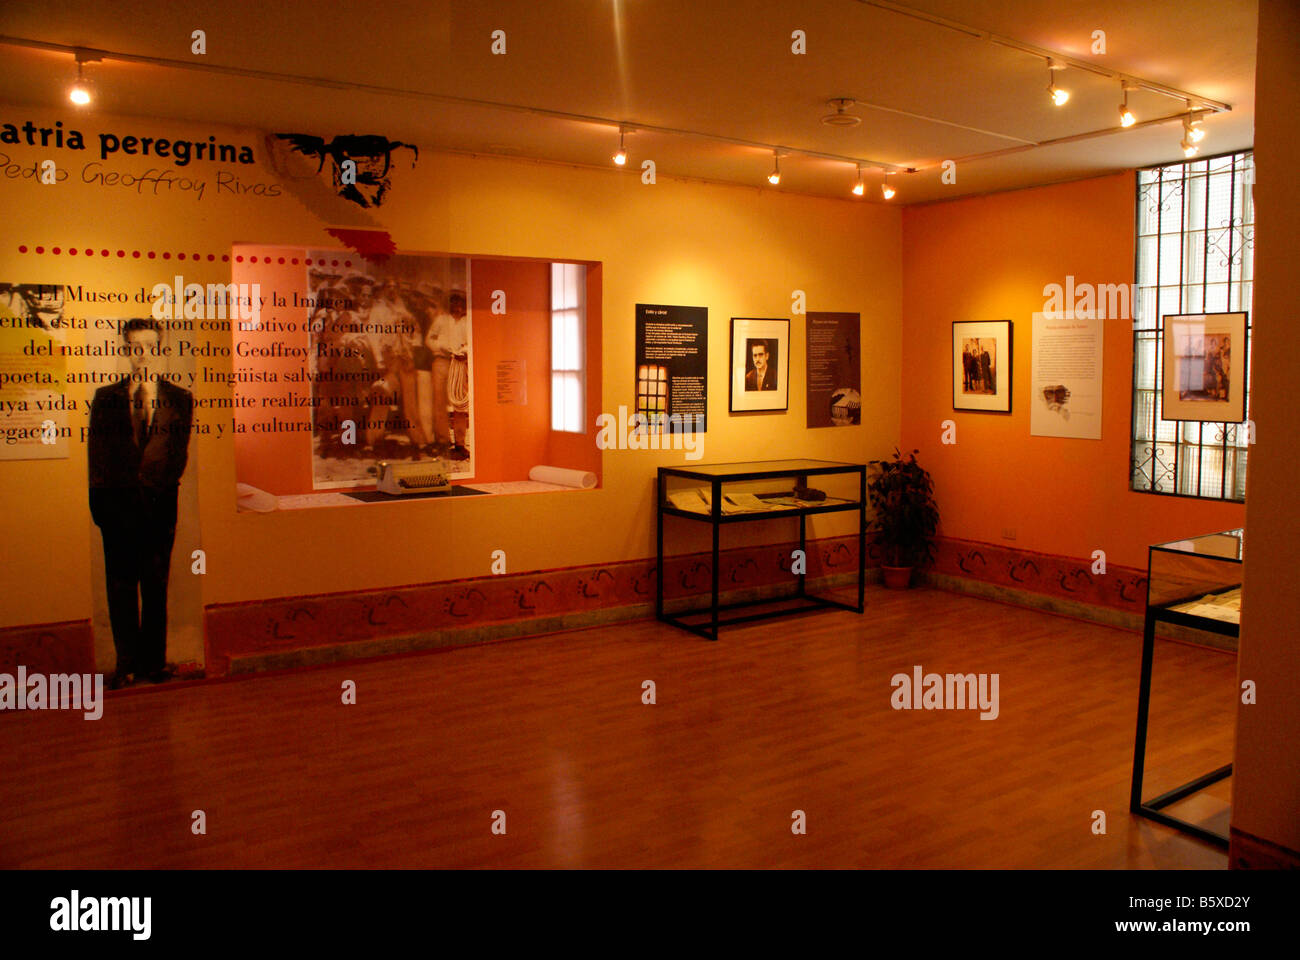 Gallery in the Museo de la Palabra y la Imagen or Museum of Word and Image in San Salvador, El Salvador Stock Photo